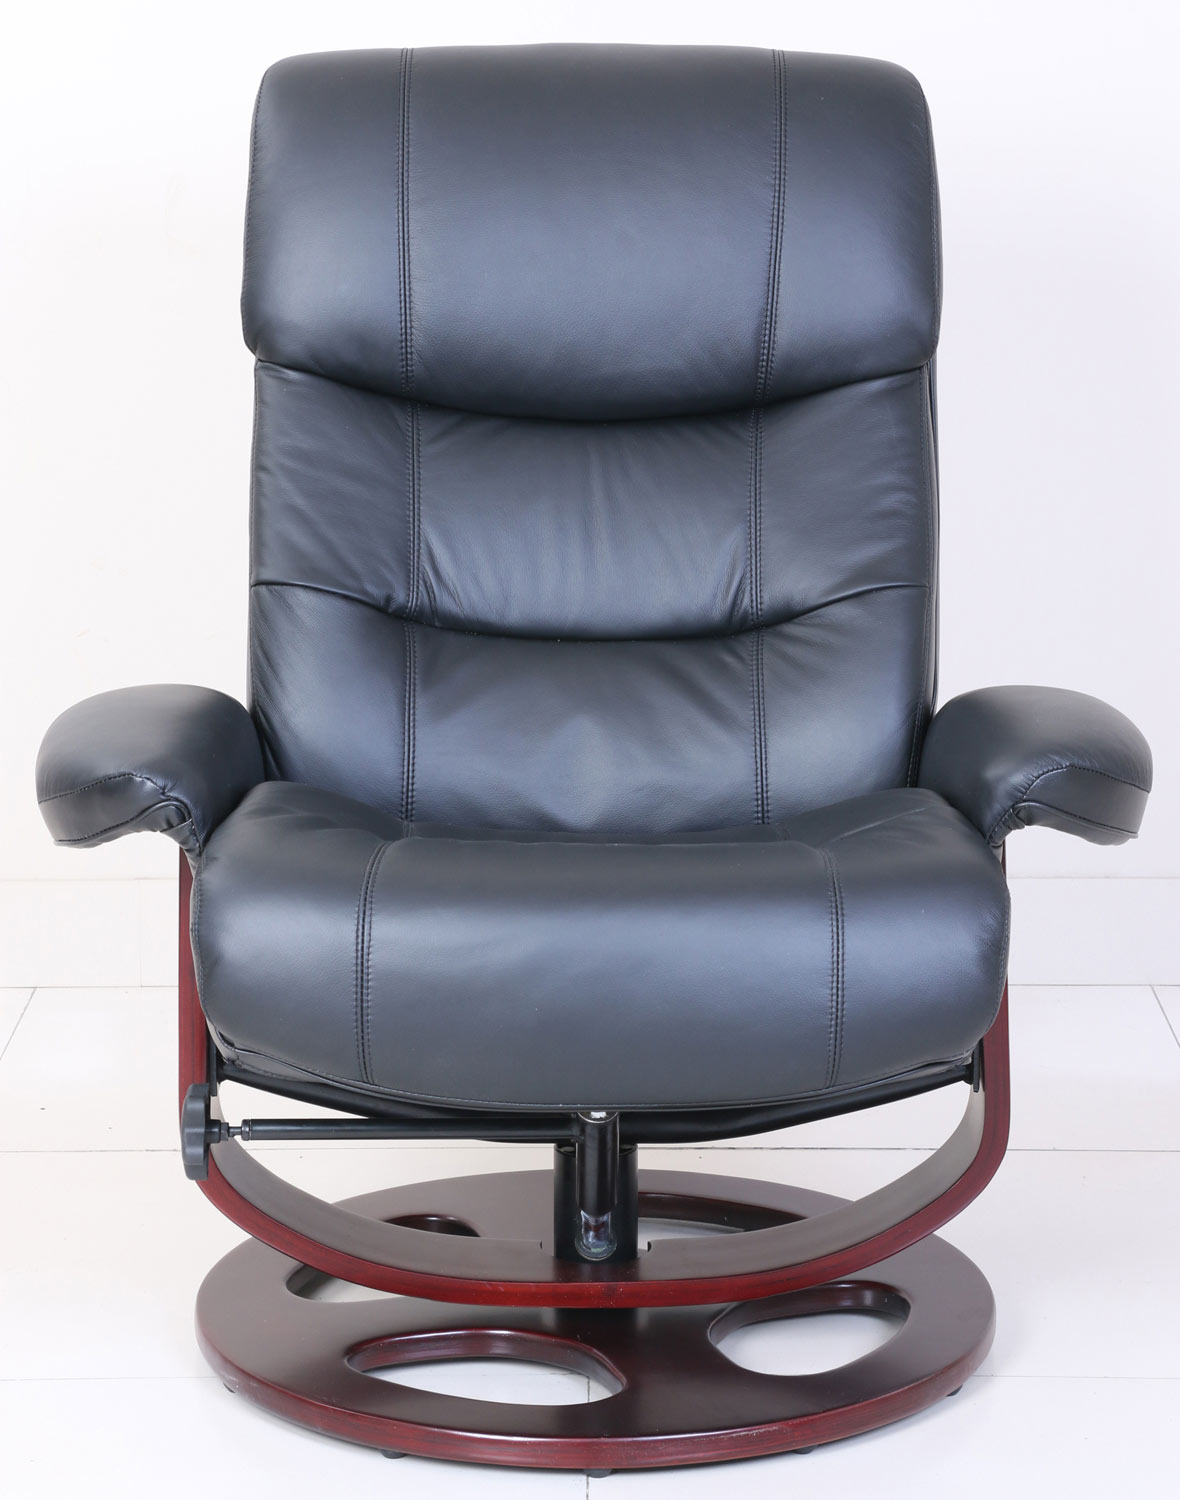 Barcalounger Dawson Pedestal Recliner Chair and Ottoman - Frampton Black/Leather Match